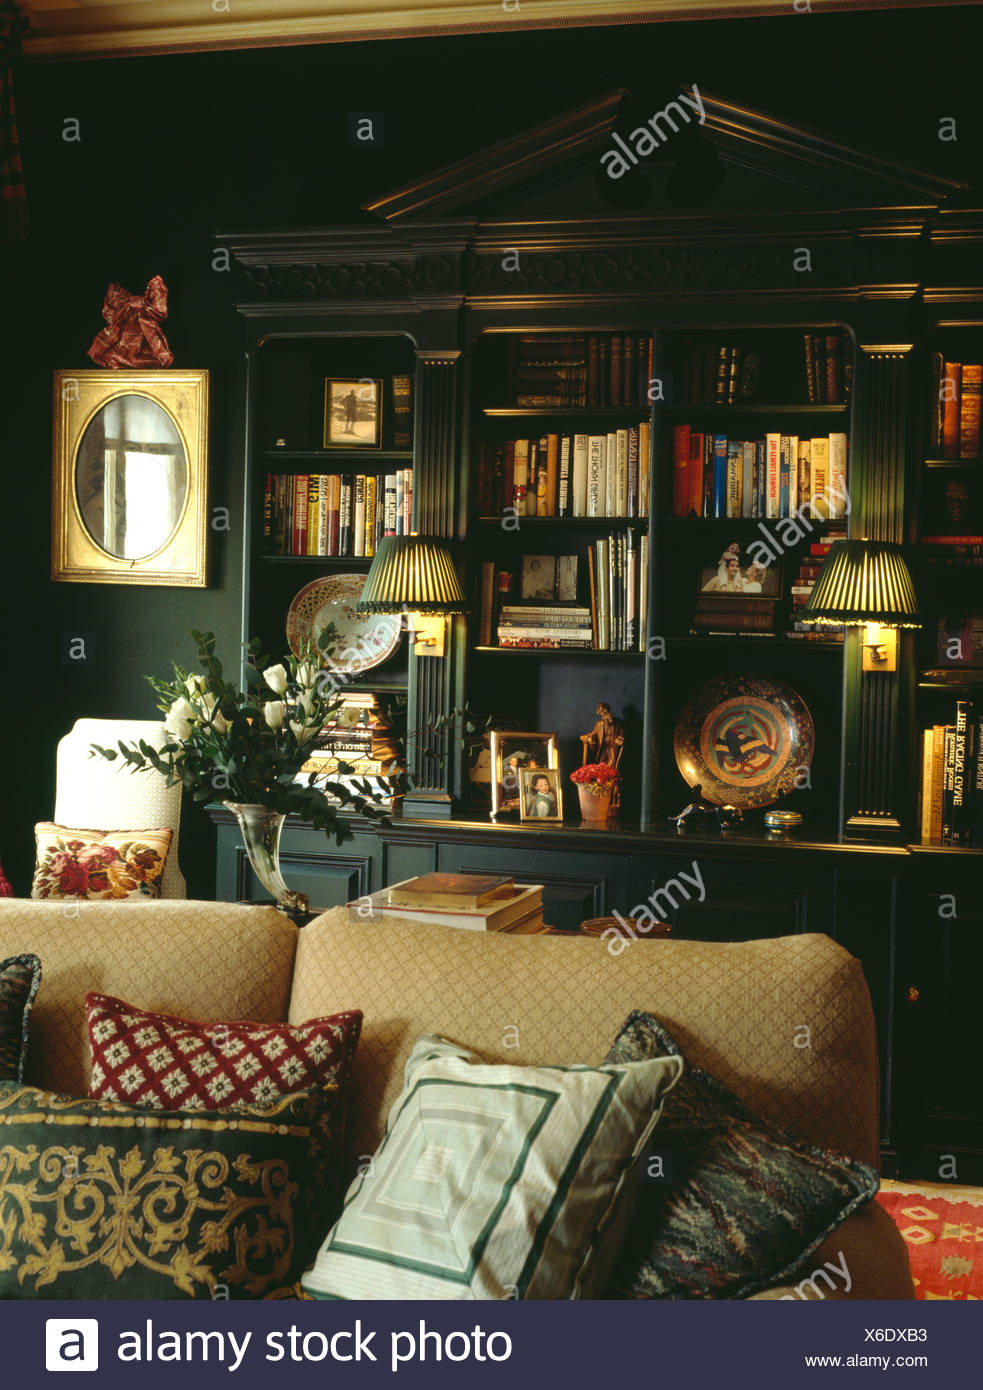 Astonishing Lighted Lamps On Fitted Bookshelves In Dark Green Living Download Free Architecture Designs Embacsunscenecom